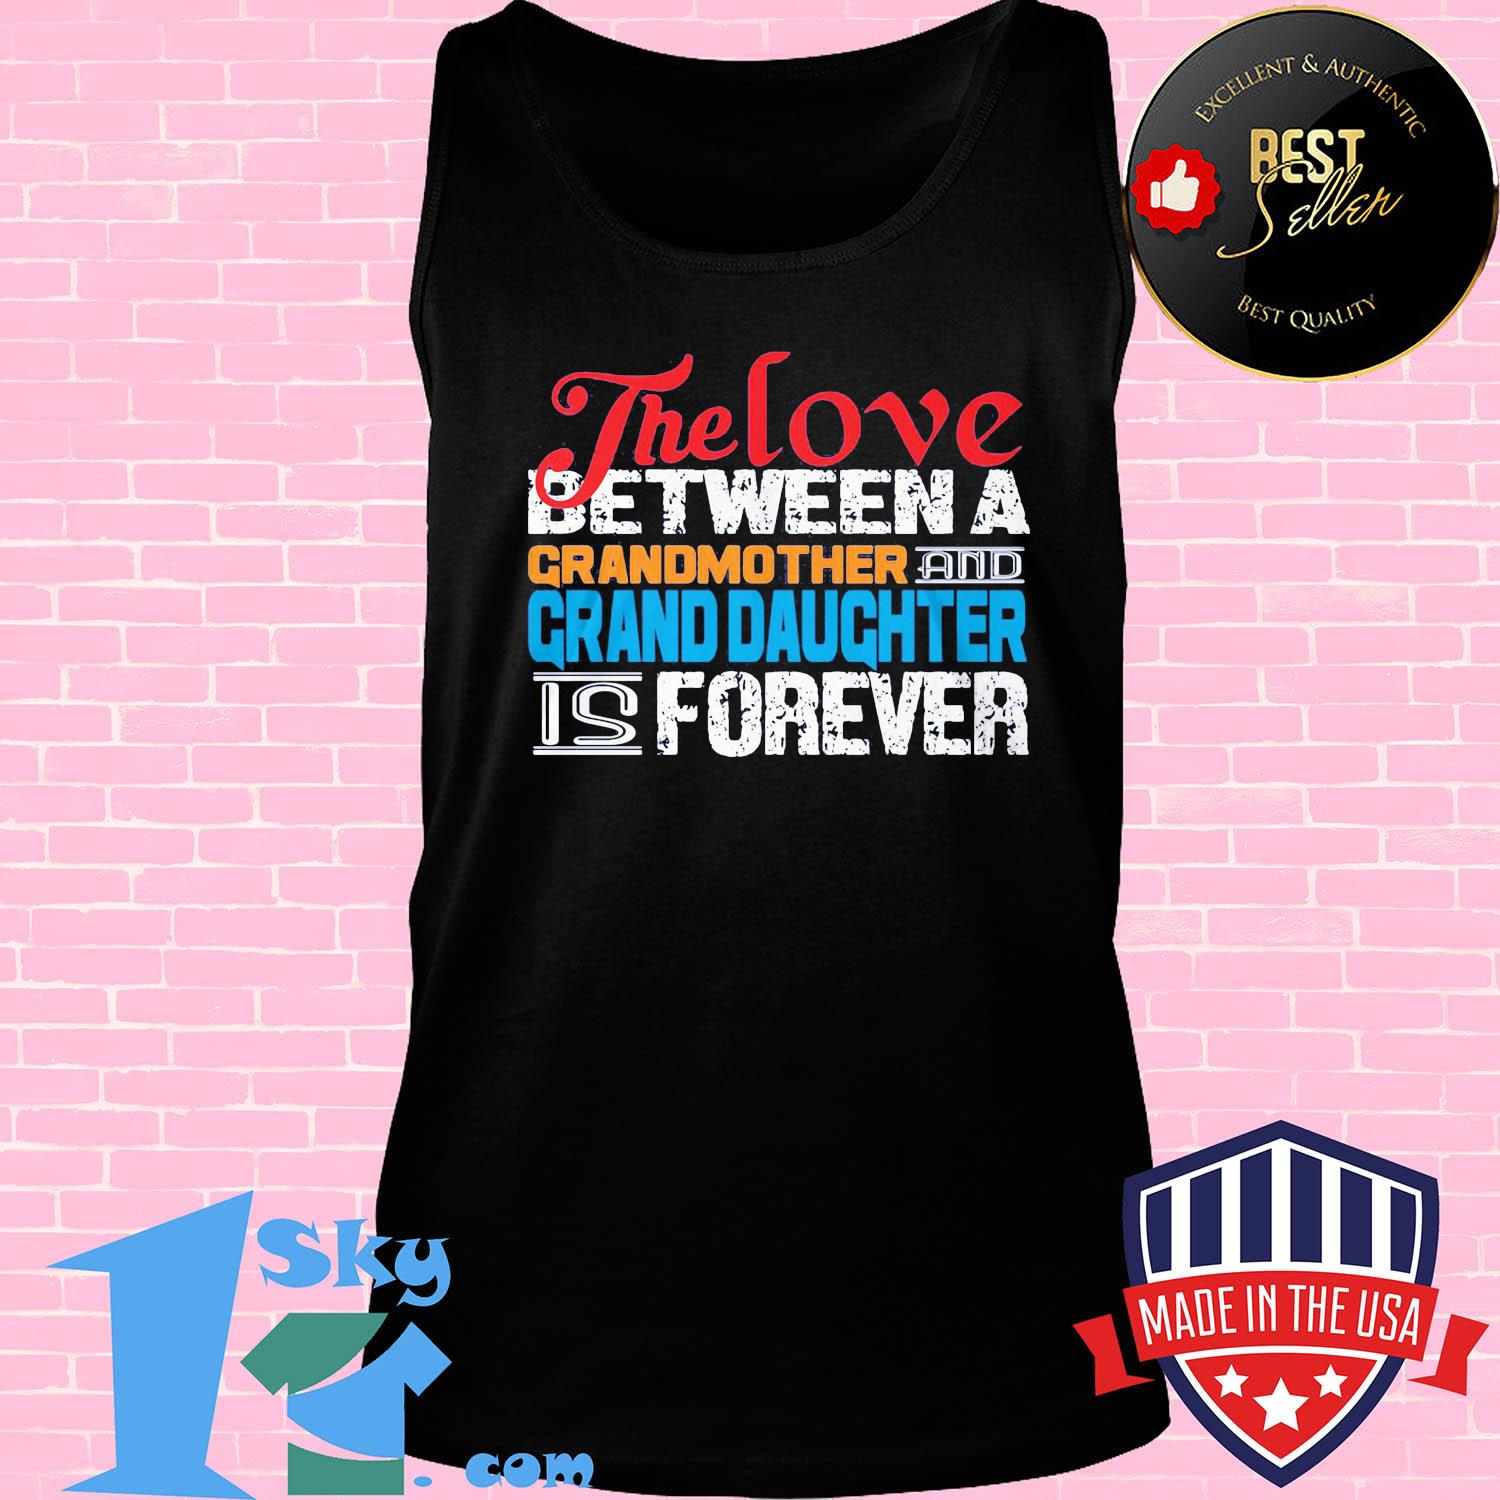 The love between a grandmother and granddaughter is forever shirt